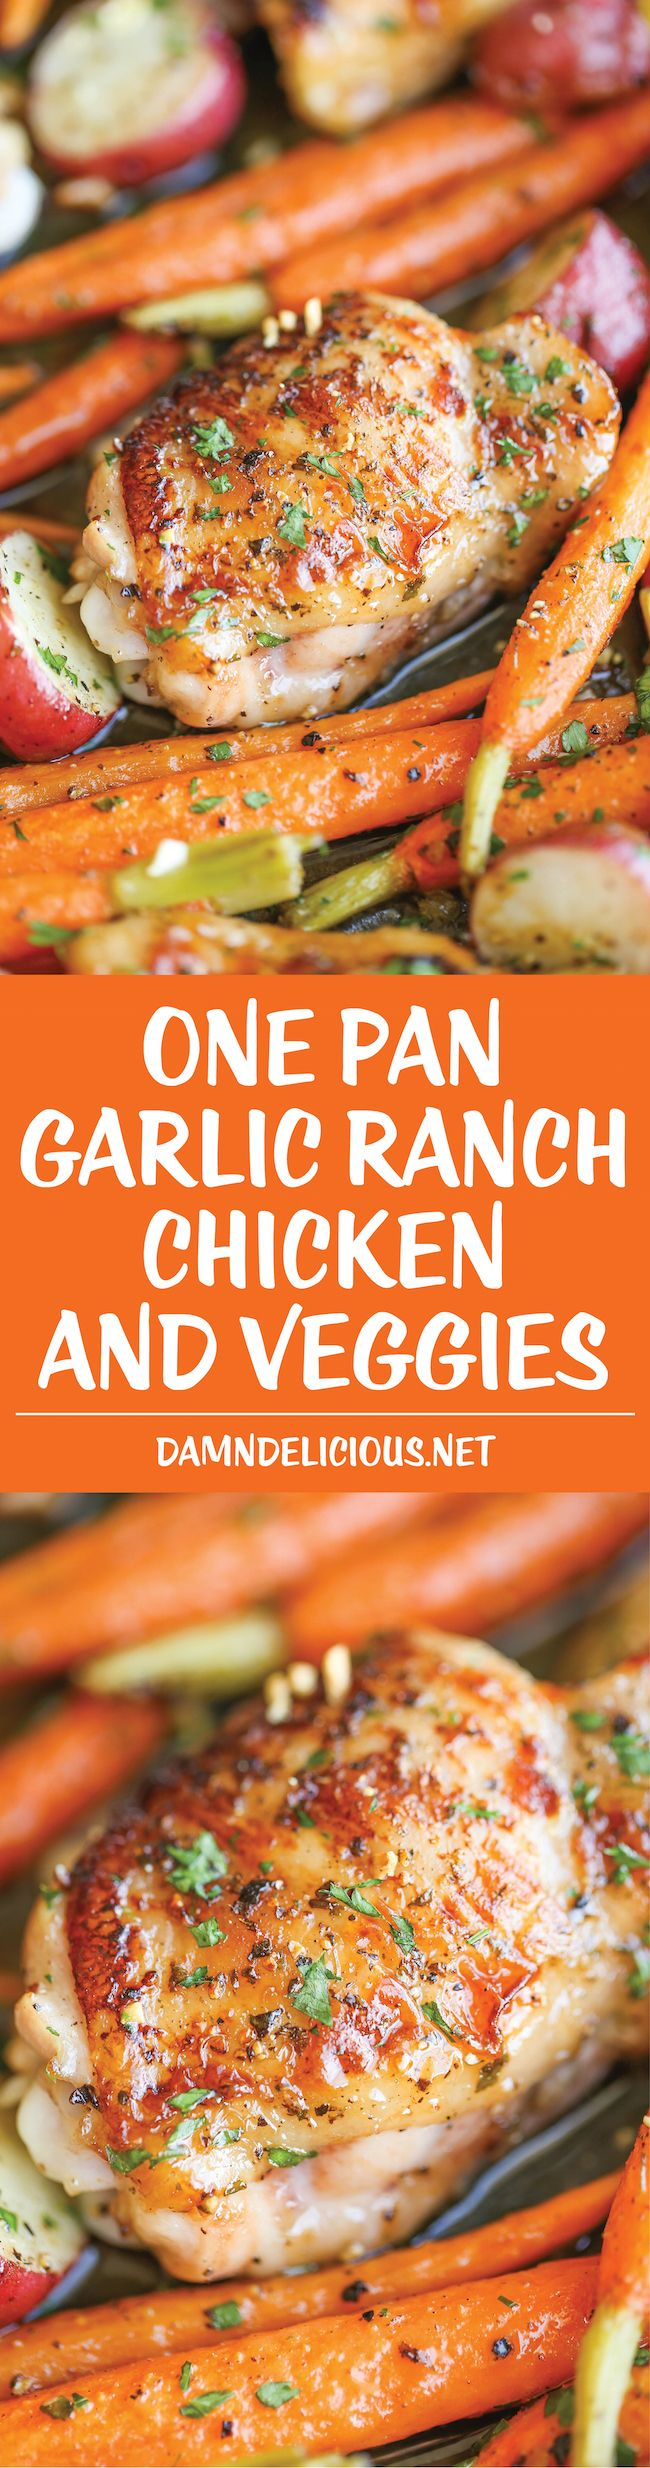 One Pan Garlic Ranch Chicken and Veggies: crisp-tender chicken baked to absolute perfection with roasted carrots and potatoes - all cooked in a single pan.